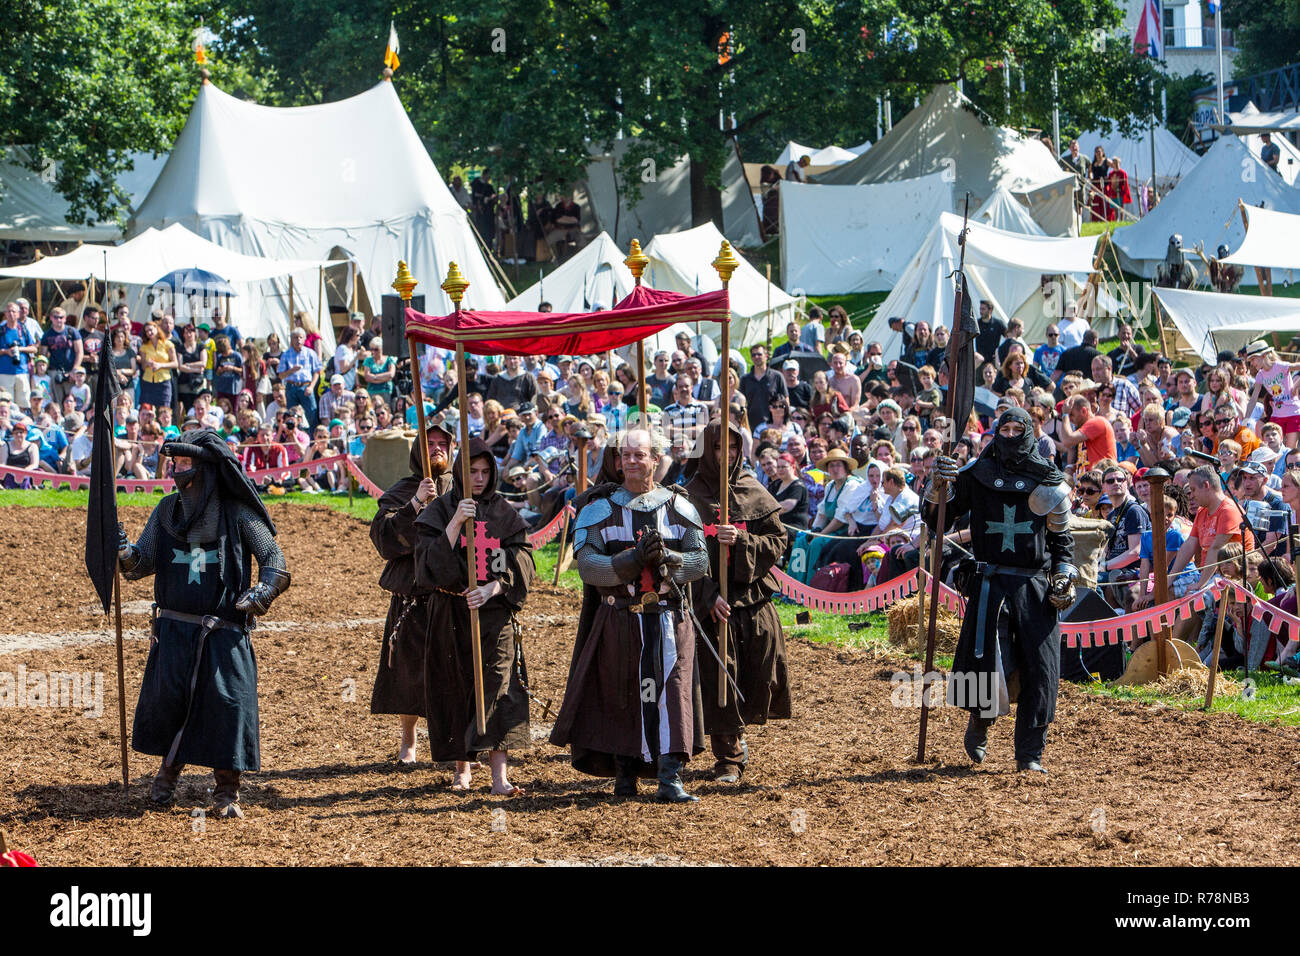 Medieval spectacle, joust with knights' camp and market, at Broich castle, Mülheim an der Ruhr, North Rhine-Westphalia Castle - Stock Image